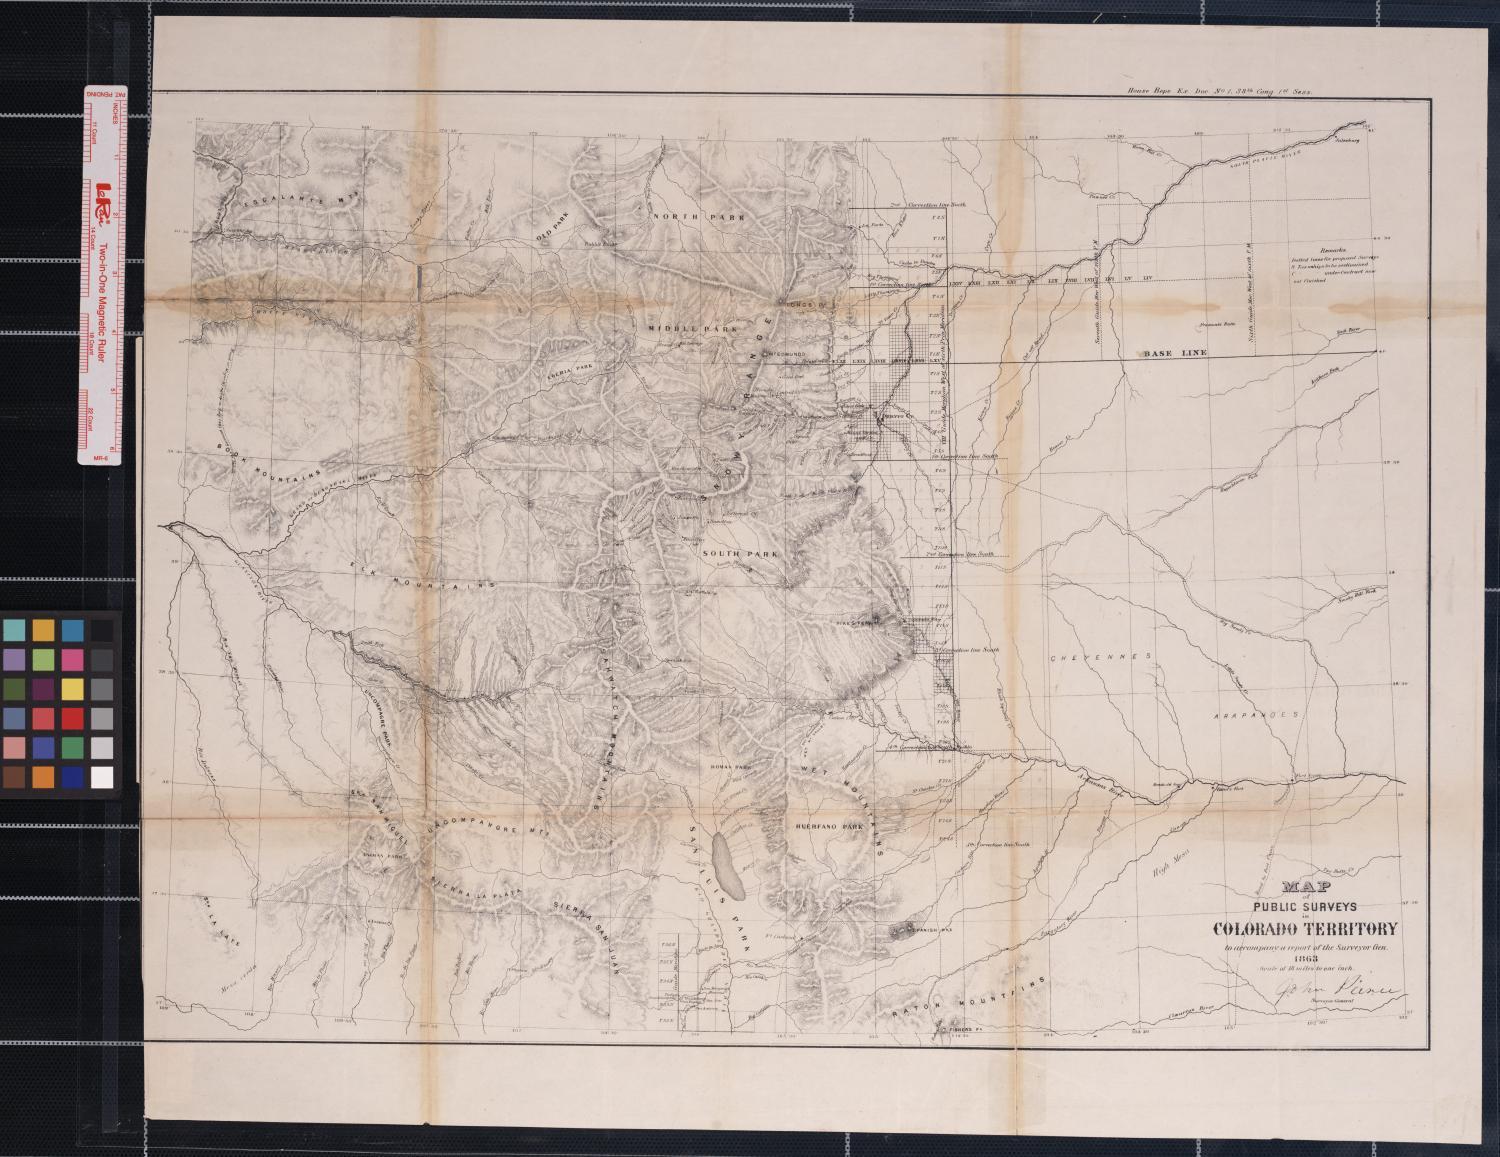 Map of Public Surveys in Colorado Territory to accompany a report of the Surveyor Gen., 1863                                                                                                      [Sequence #]: 1 of 1